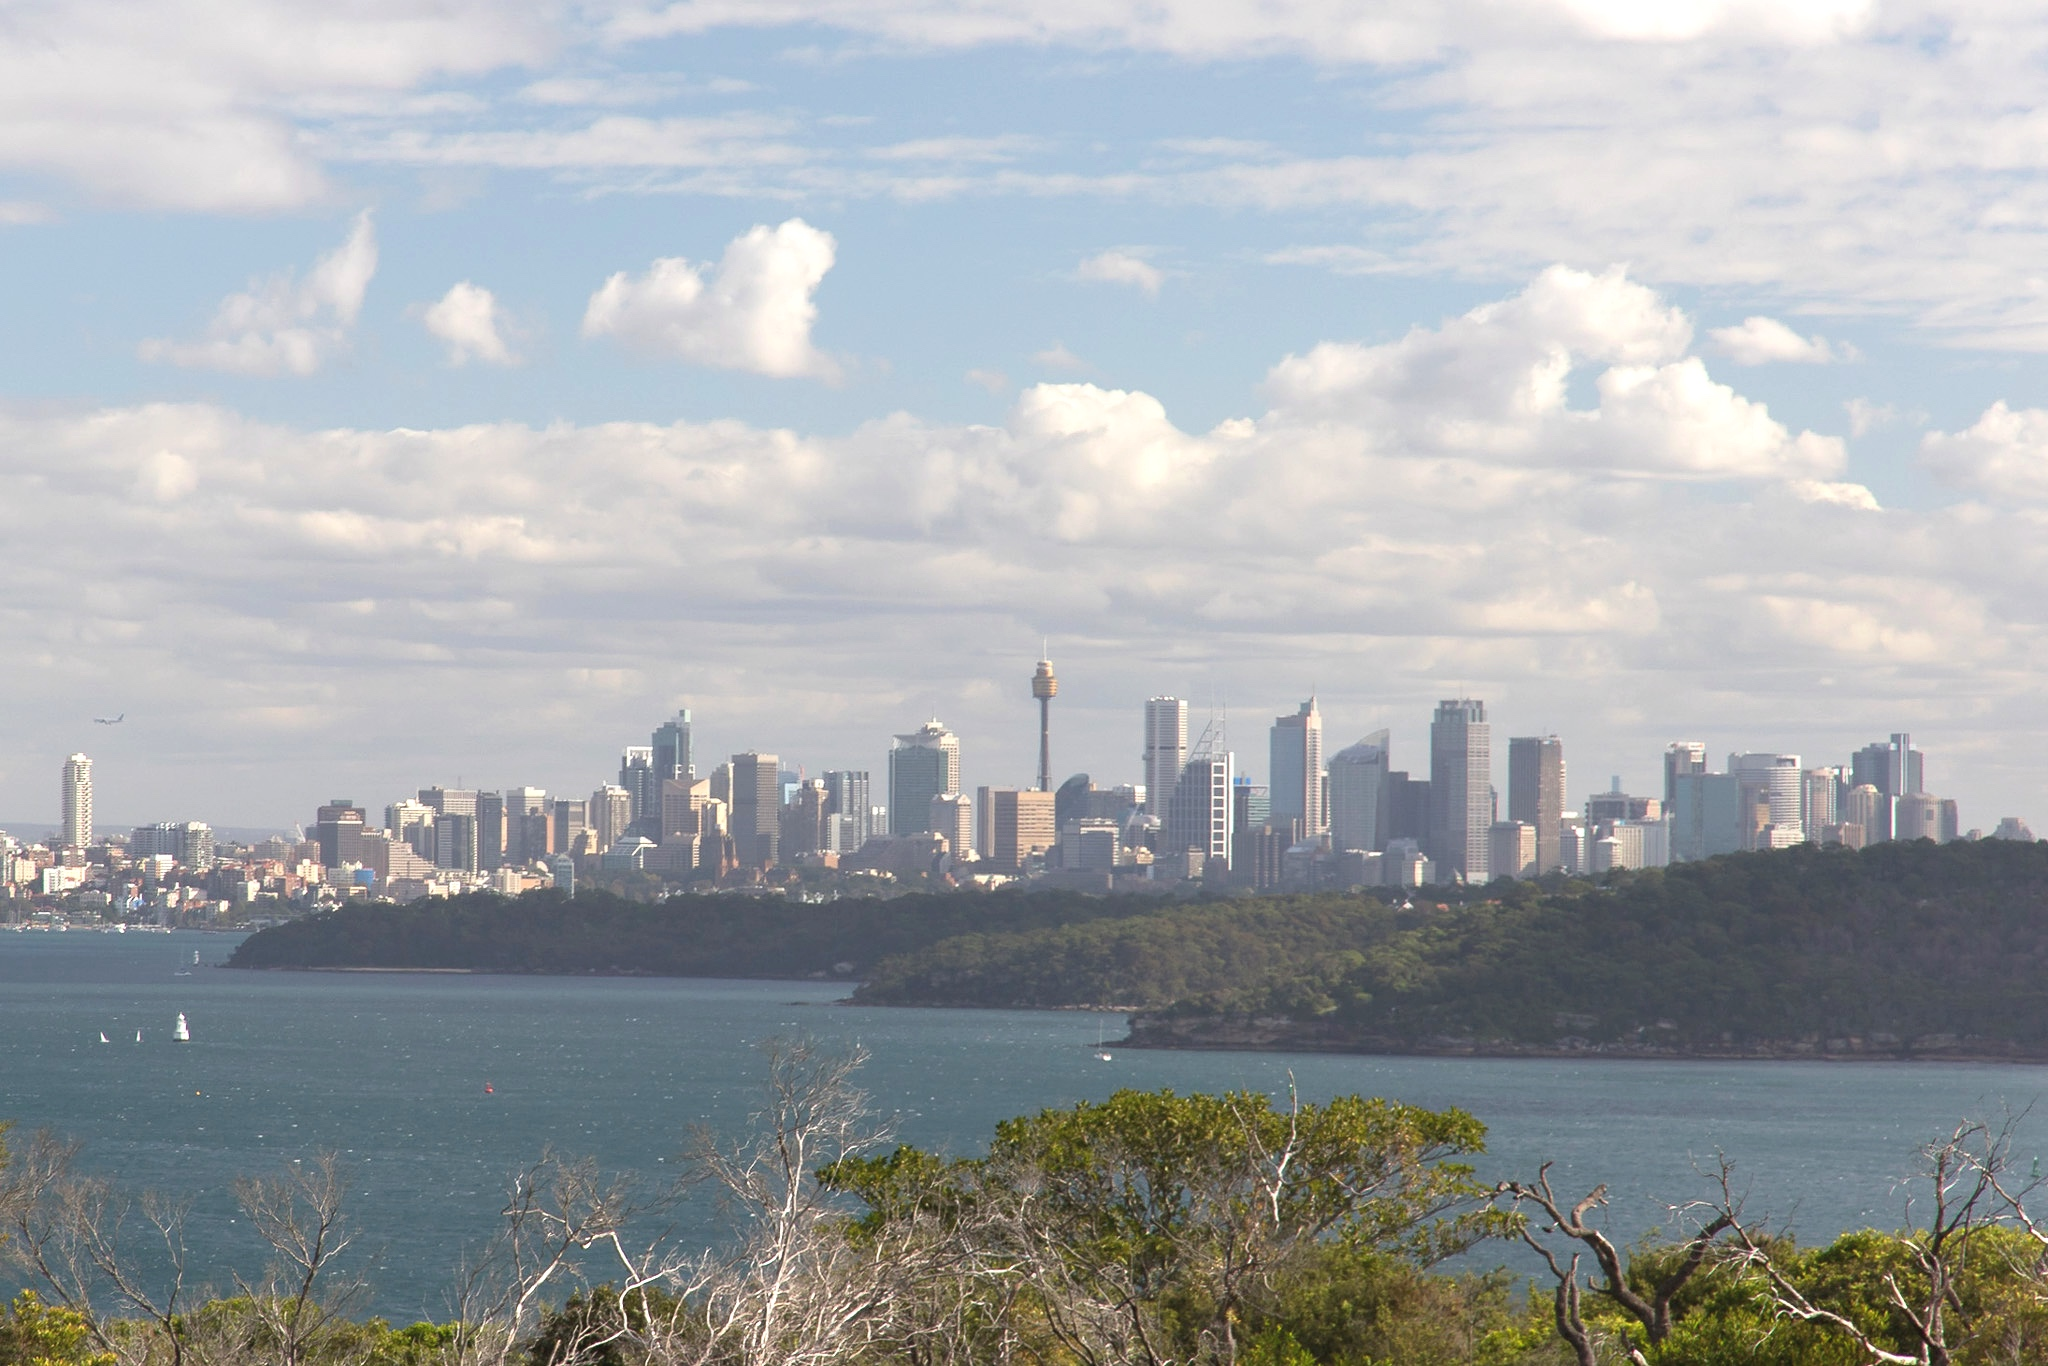 Sydney Australia skyline from North Head